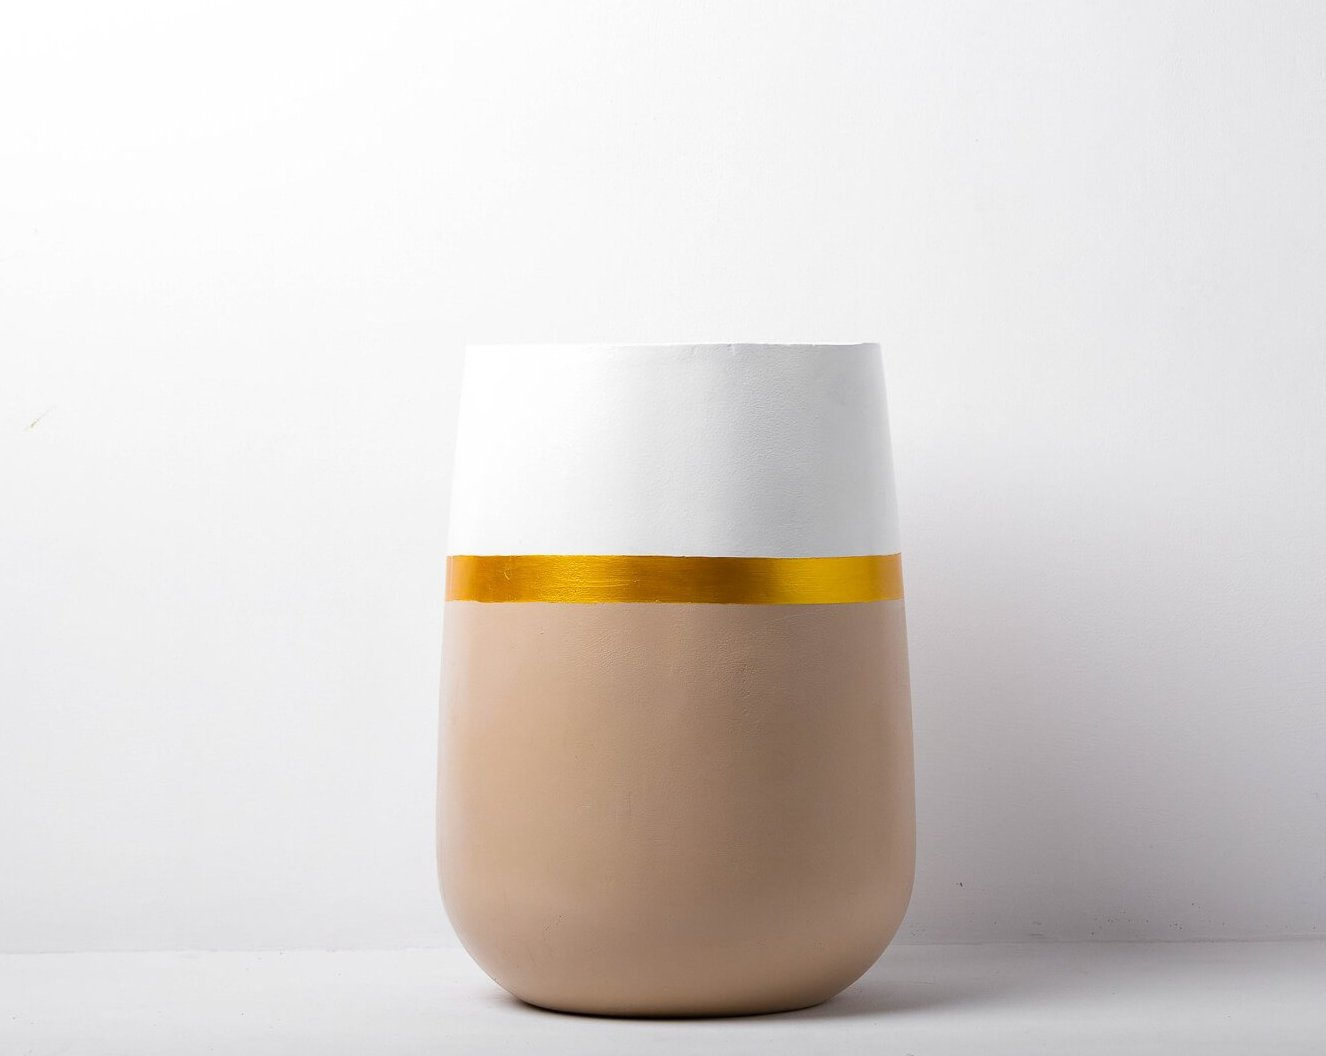 Concrete Parabola Planter White/Beige - Handprinted Collection-Eliteearth